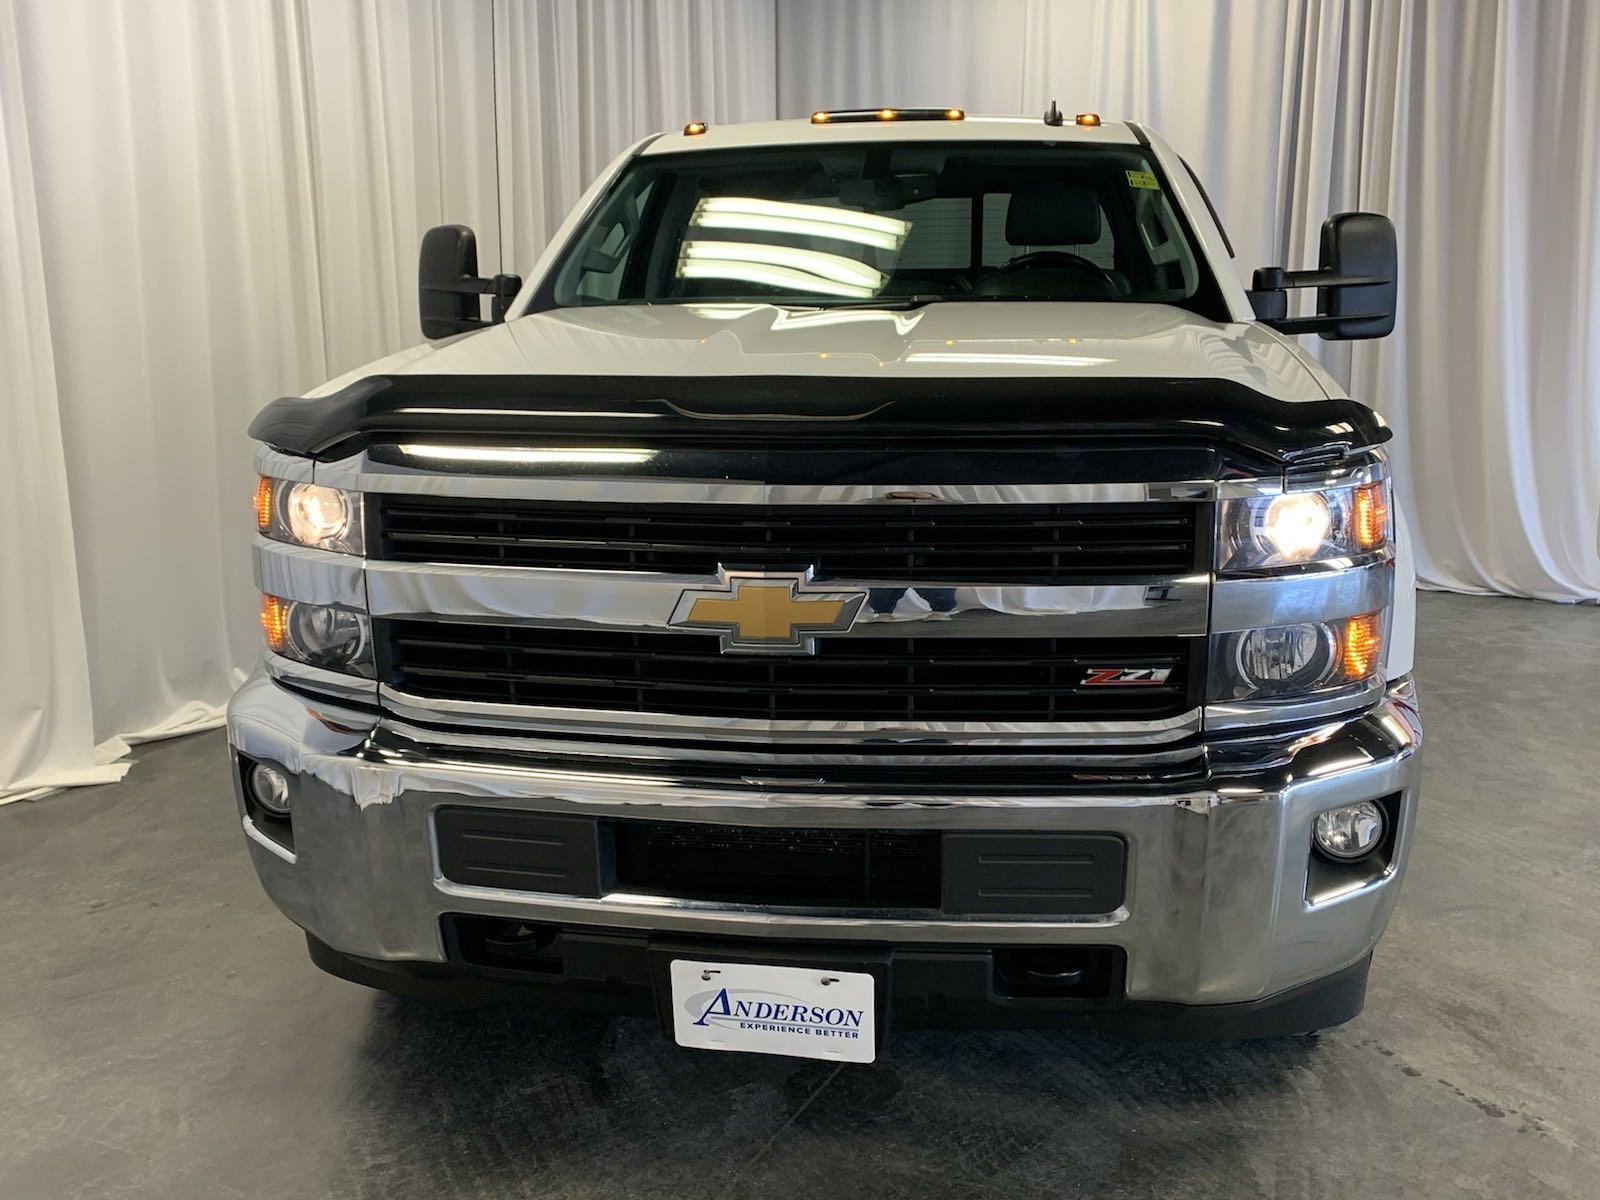 Used 2015 Chevrolet Silverado 2500HD LTZ Crew Cab Pickup for sale in St Joseph MO